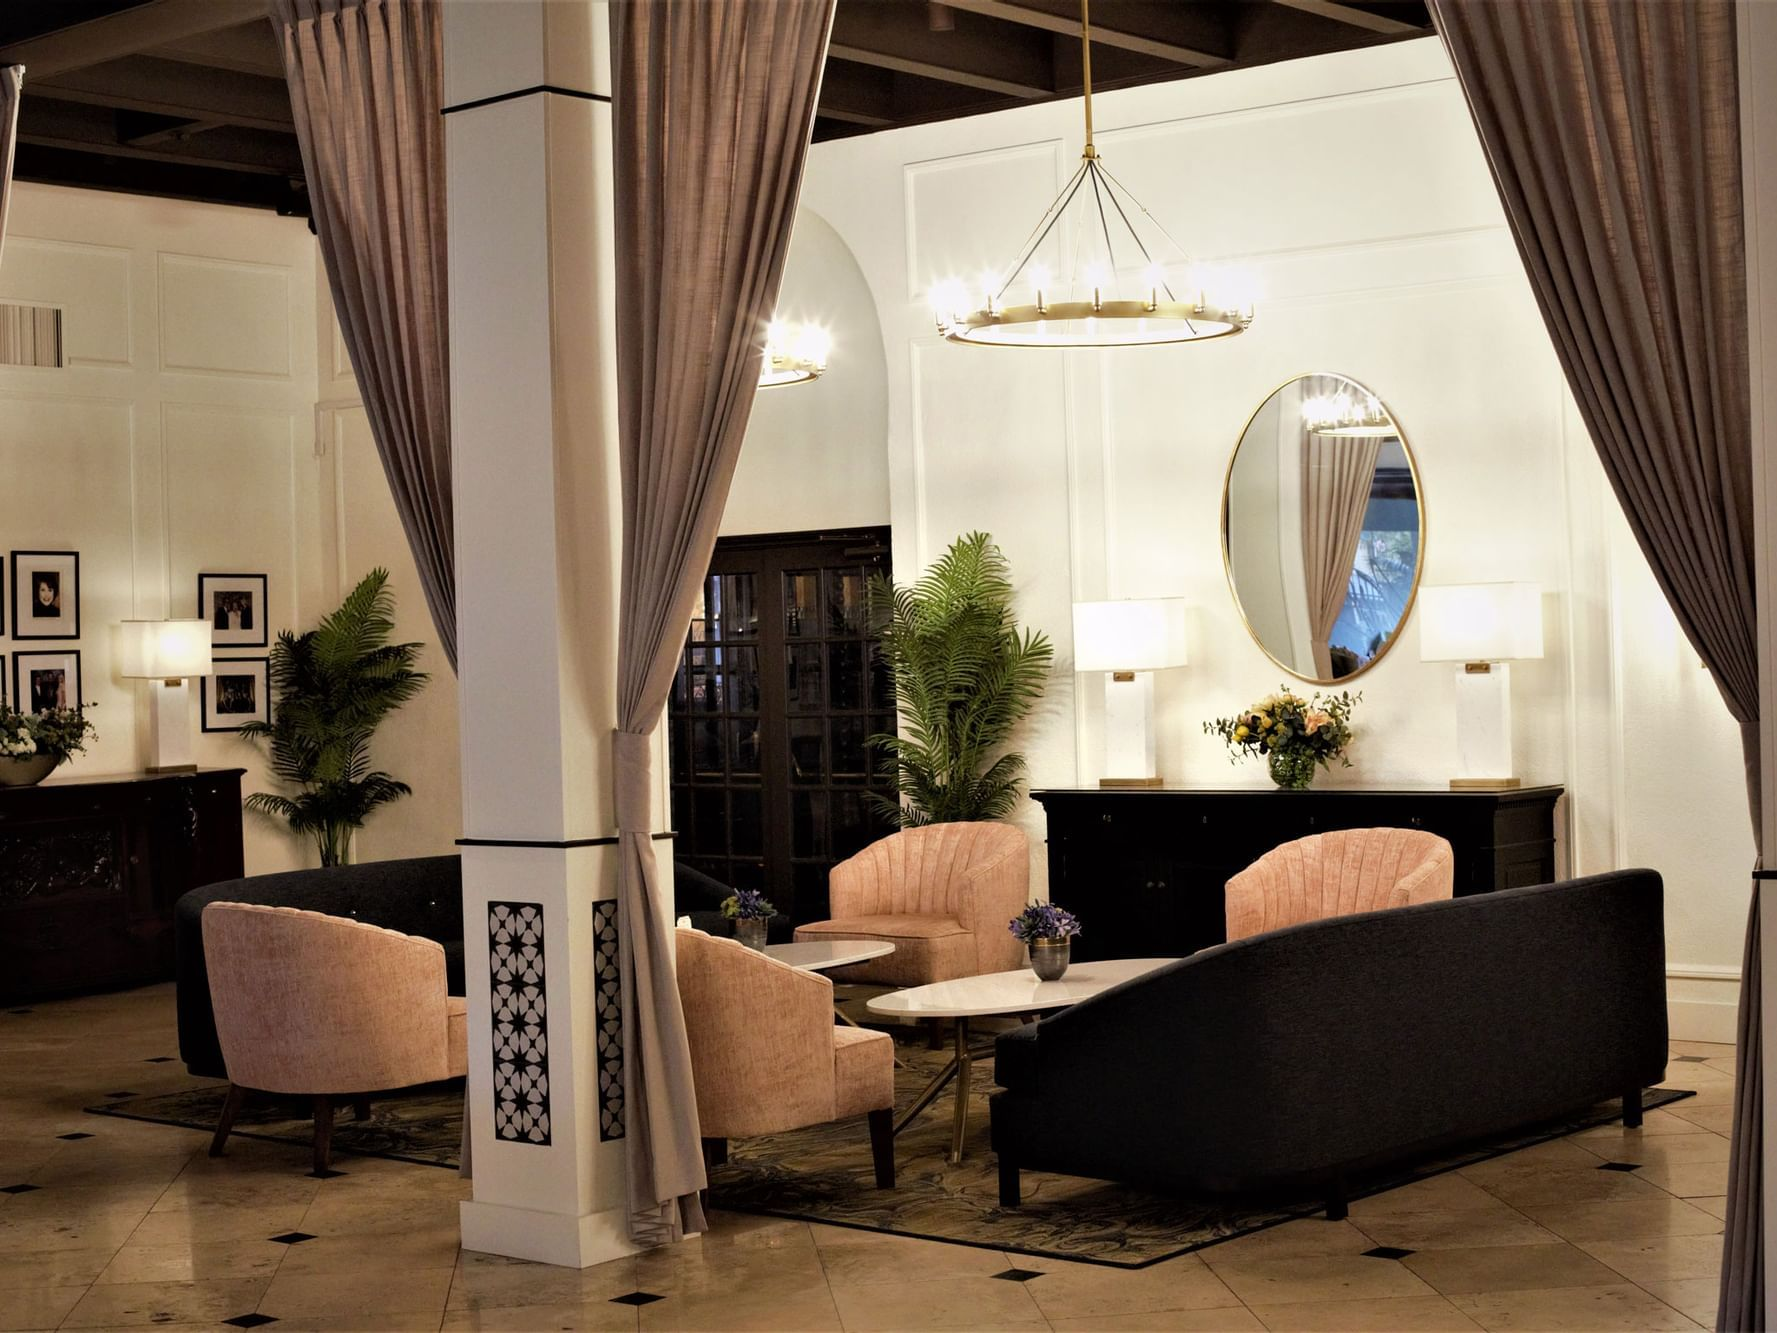 Seating arrangement in the California Lounge